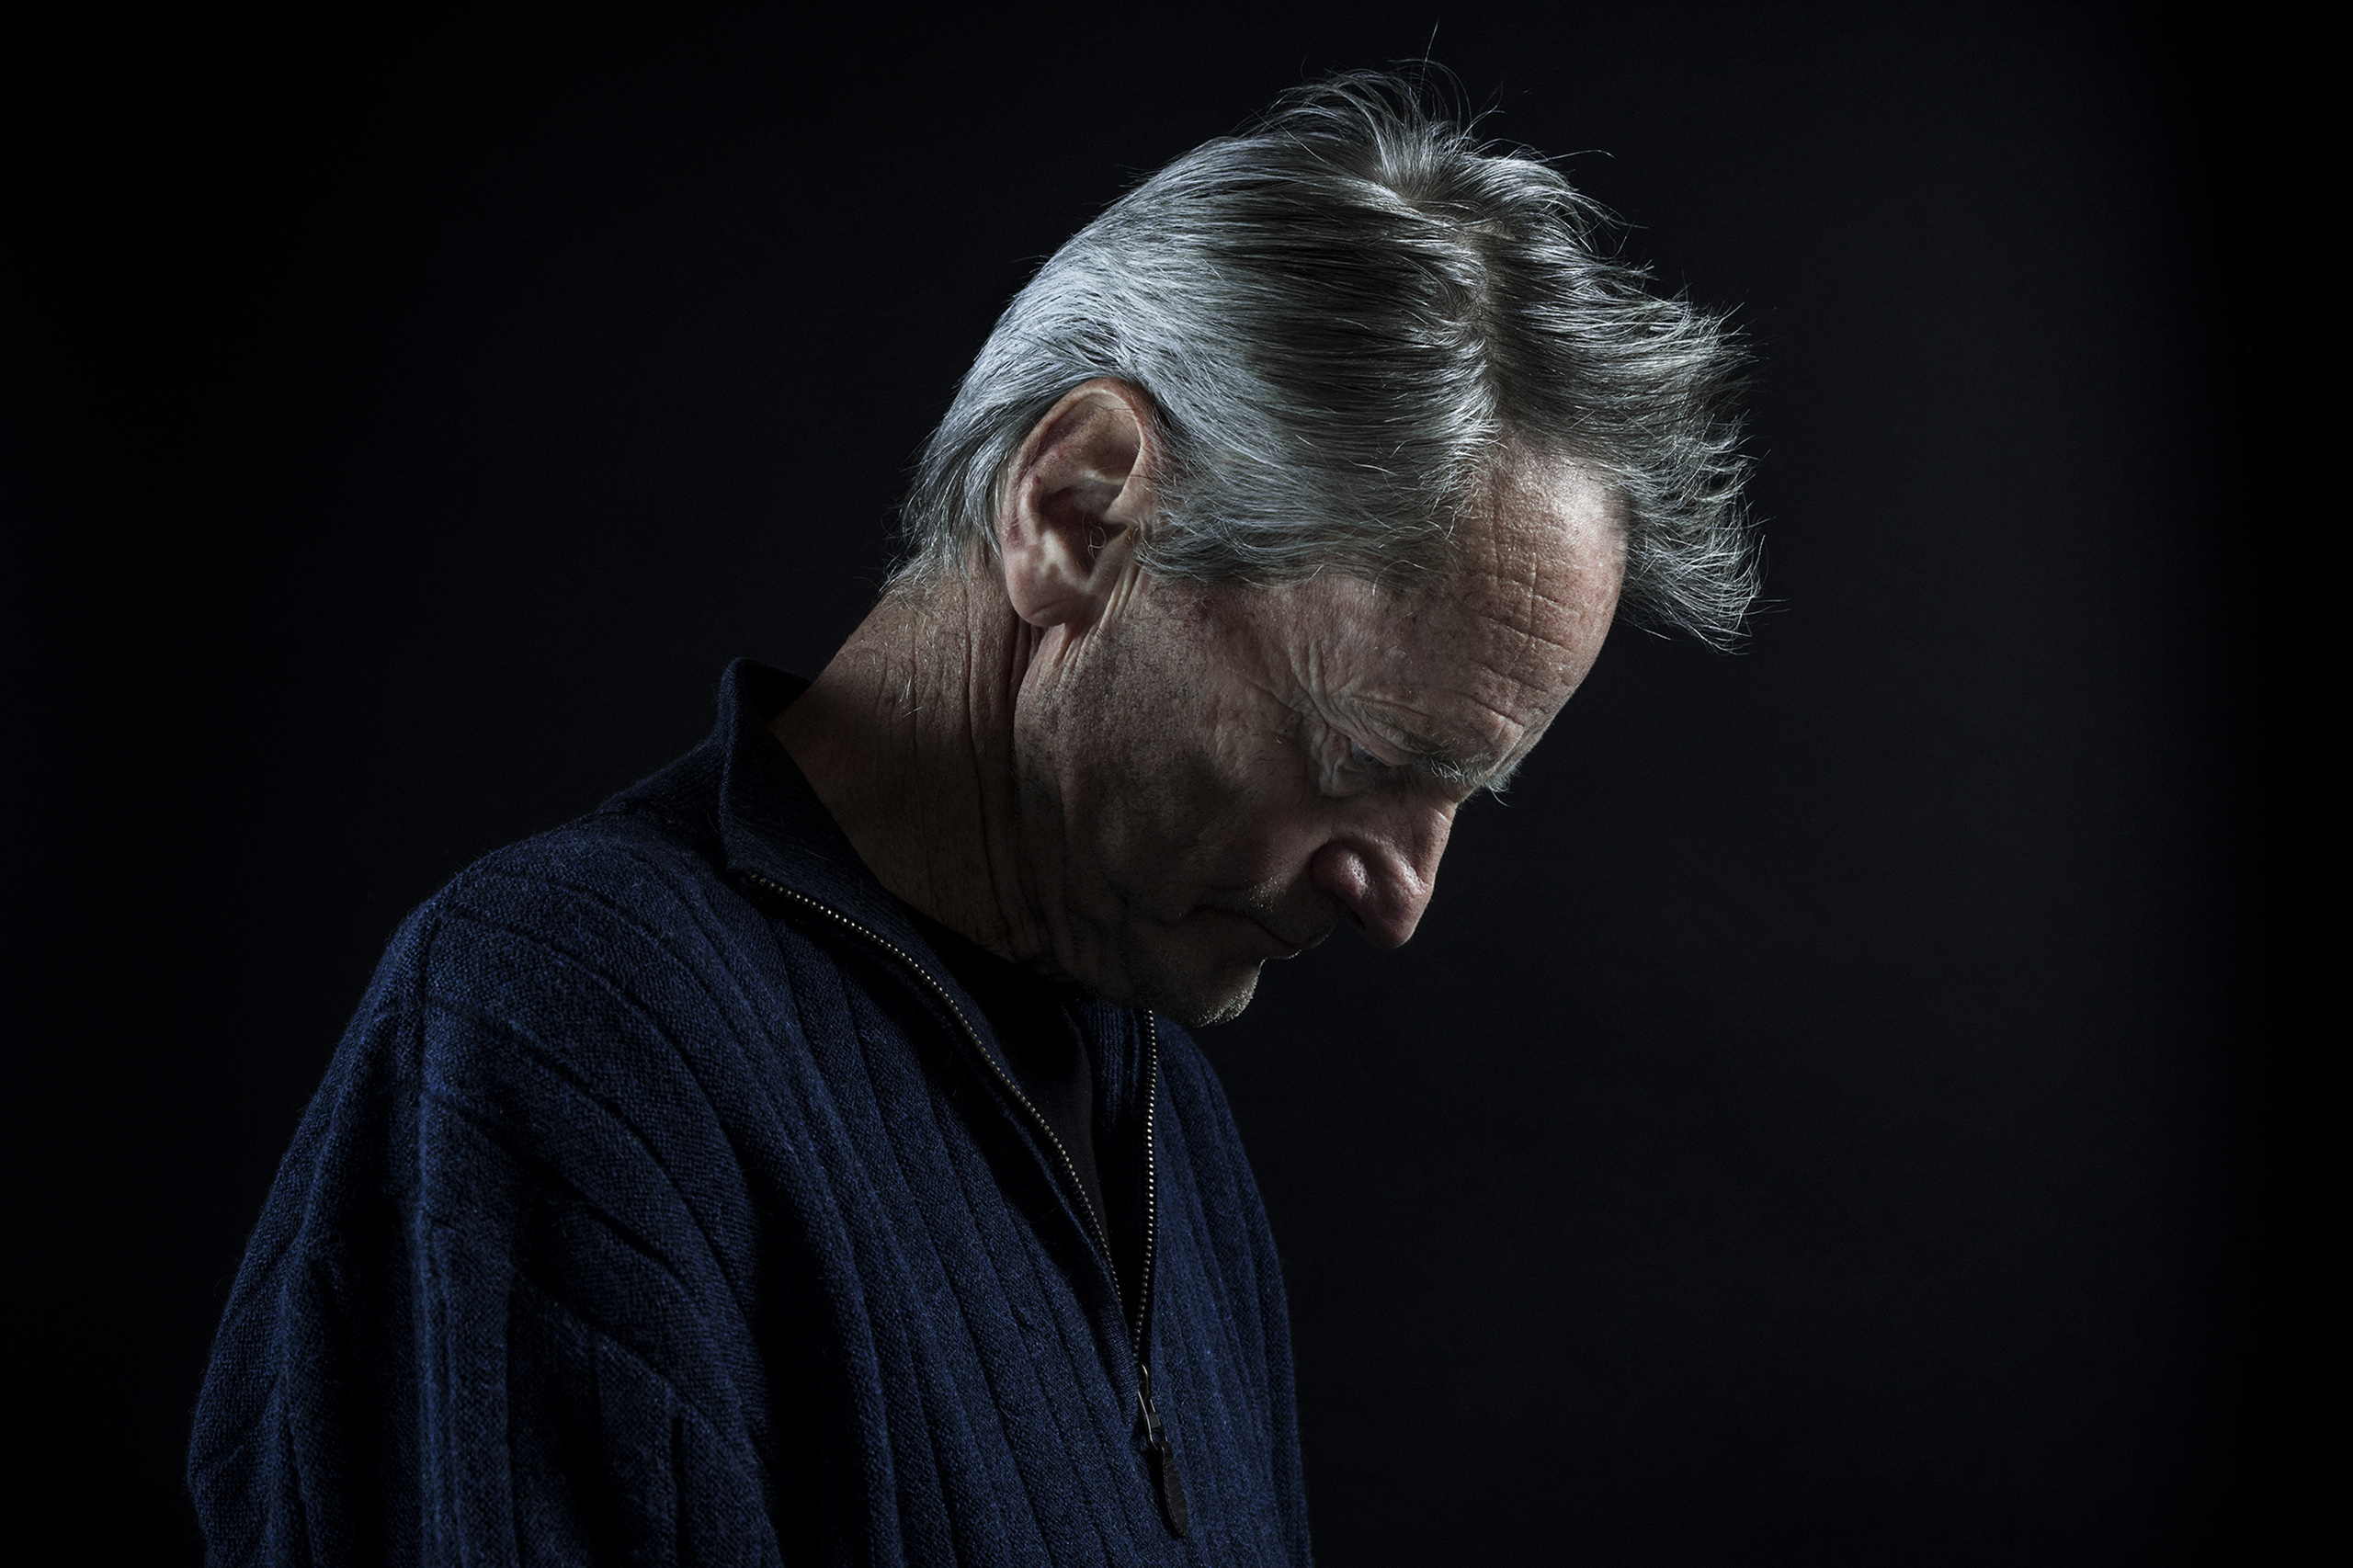 Playwright and actor Sam Shepard on a day of rehearsal for his play  Buried Child,  which won the Pulitzer Prize in 1979, at a studio in New York, Jan. 22, 2016.